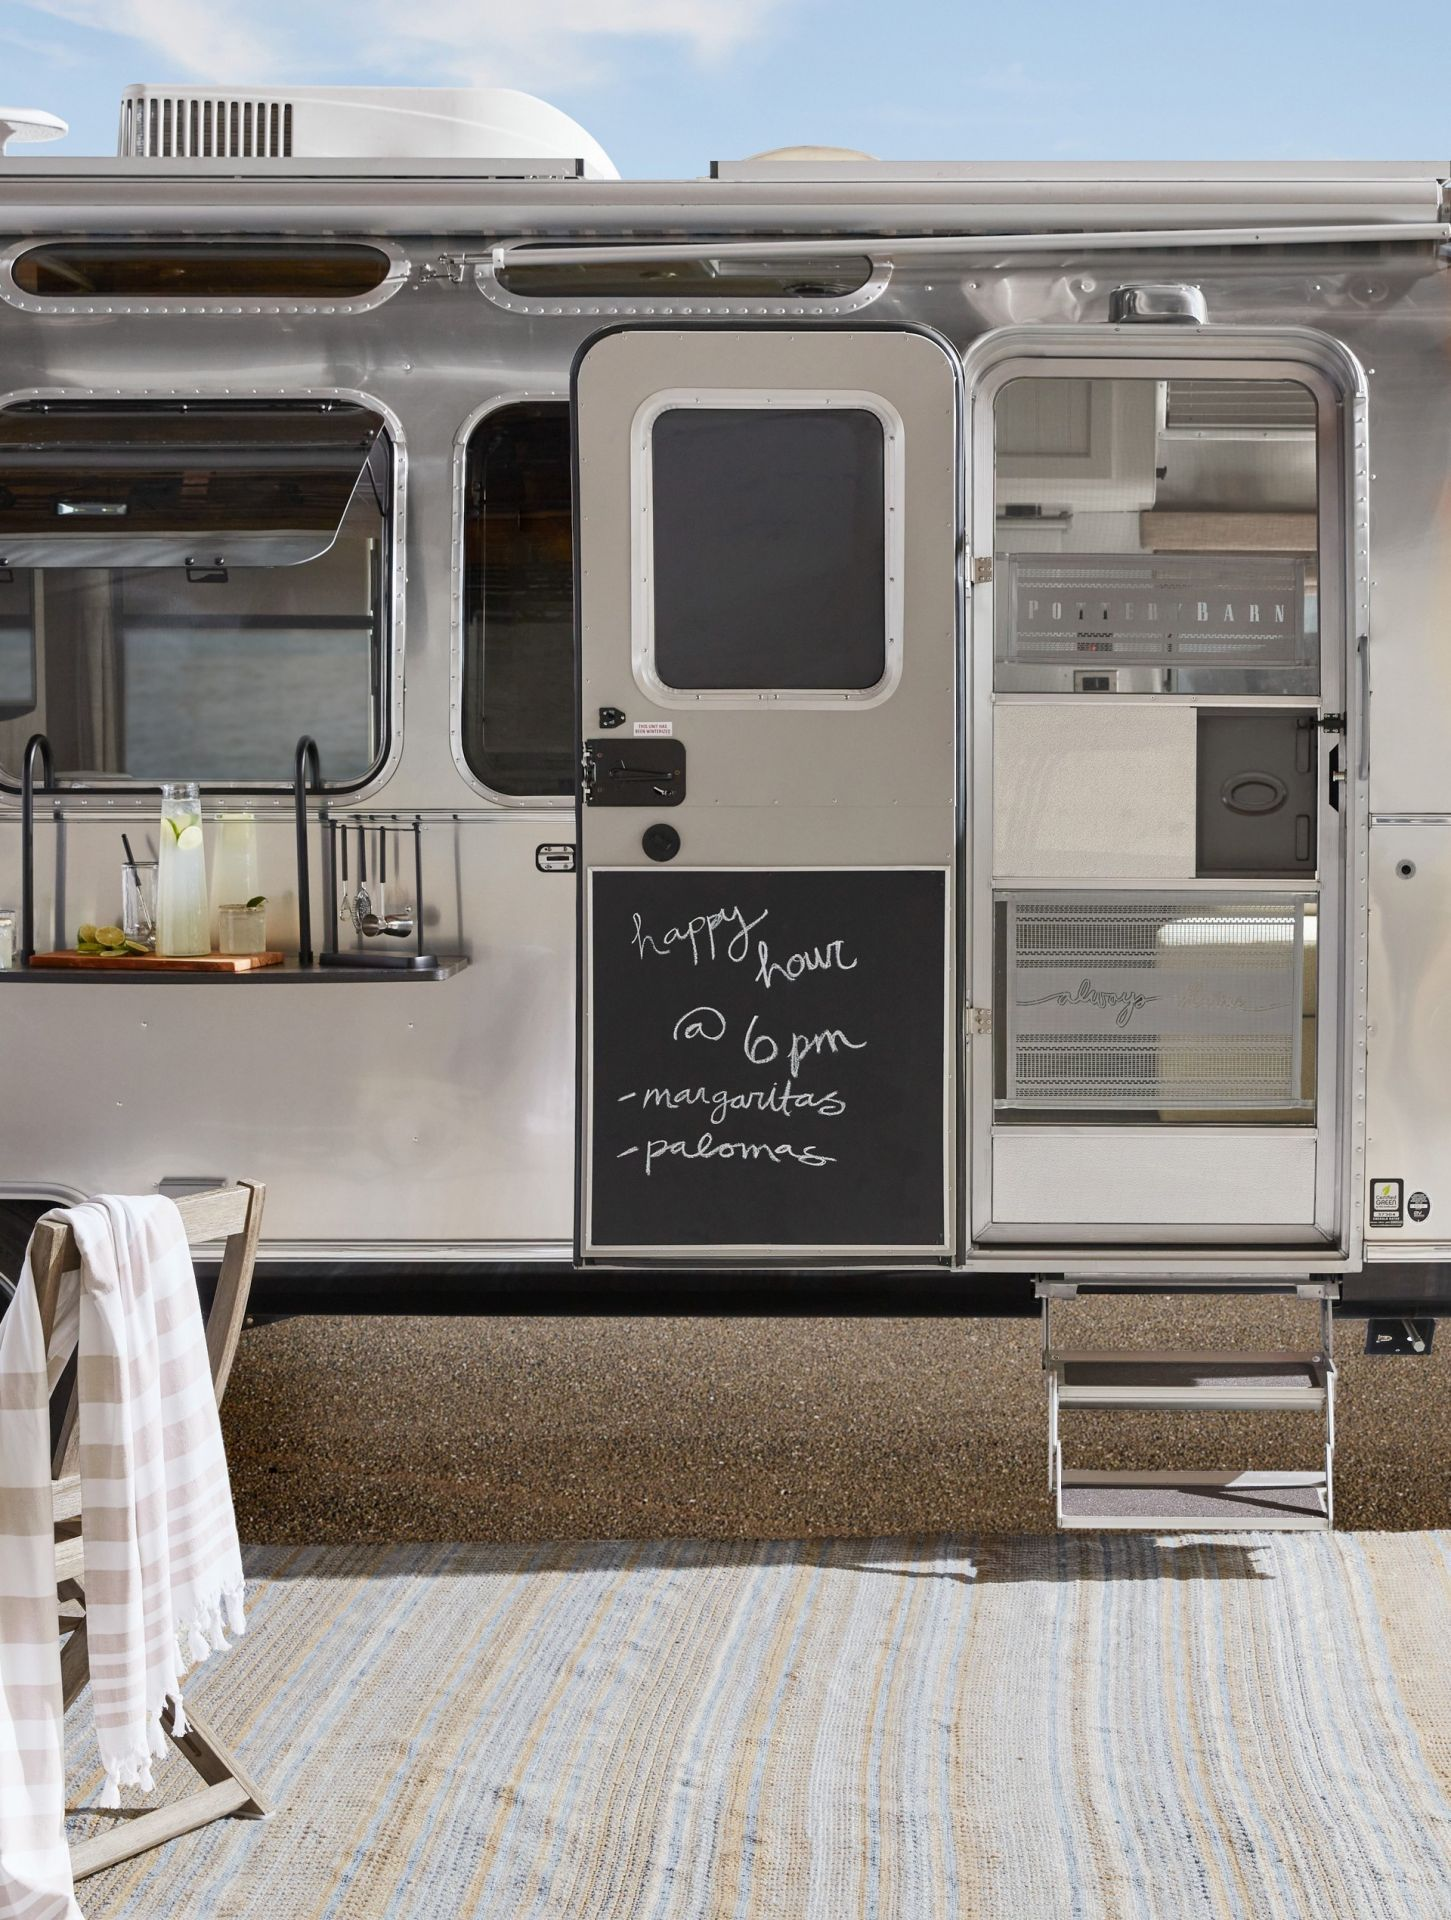 Airstream_Pottery_Barn_Special_Edition-0021